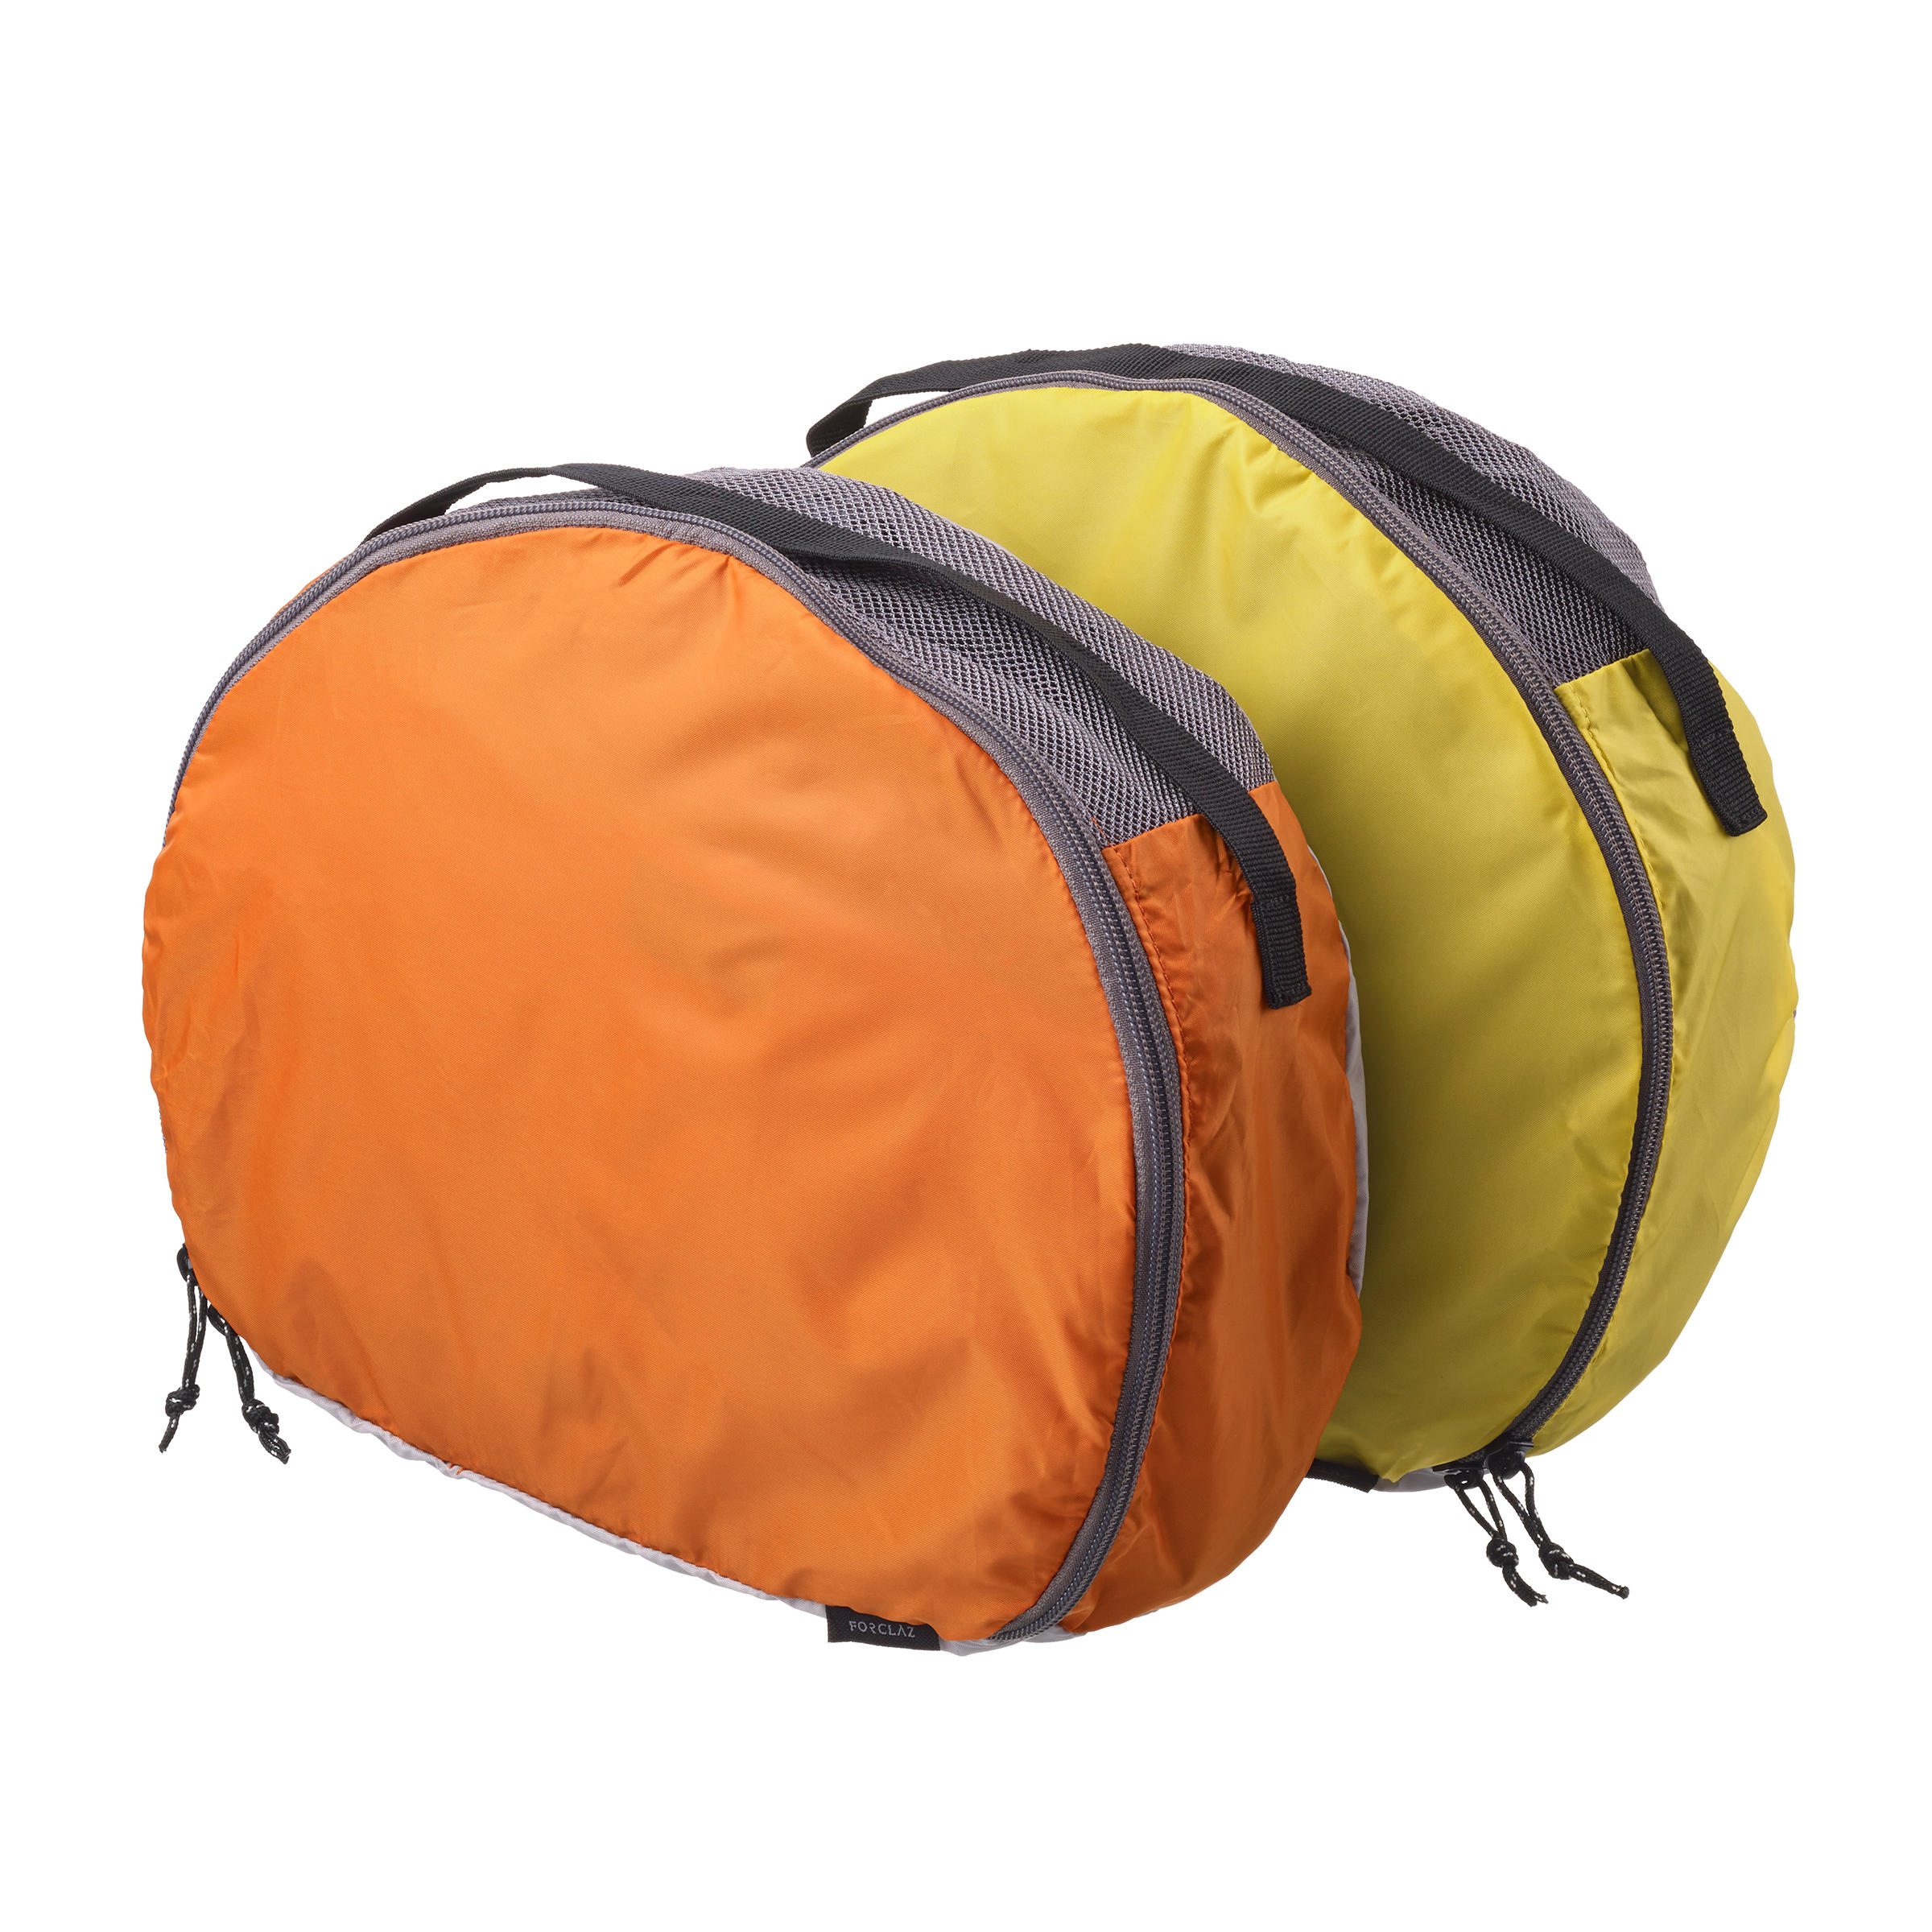 Pack of 2 Half-Moon Storage Bags for 50 to 60 L Bags